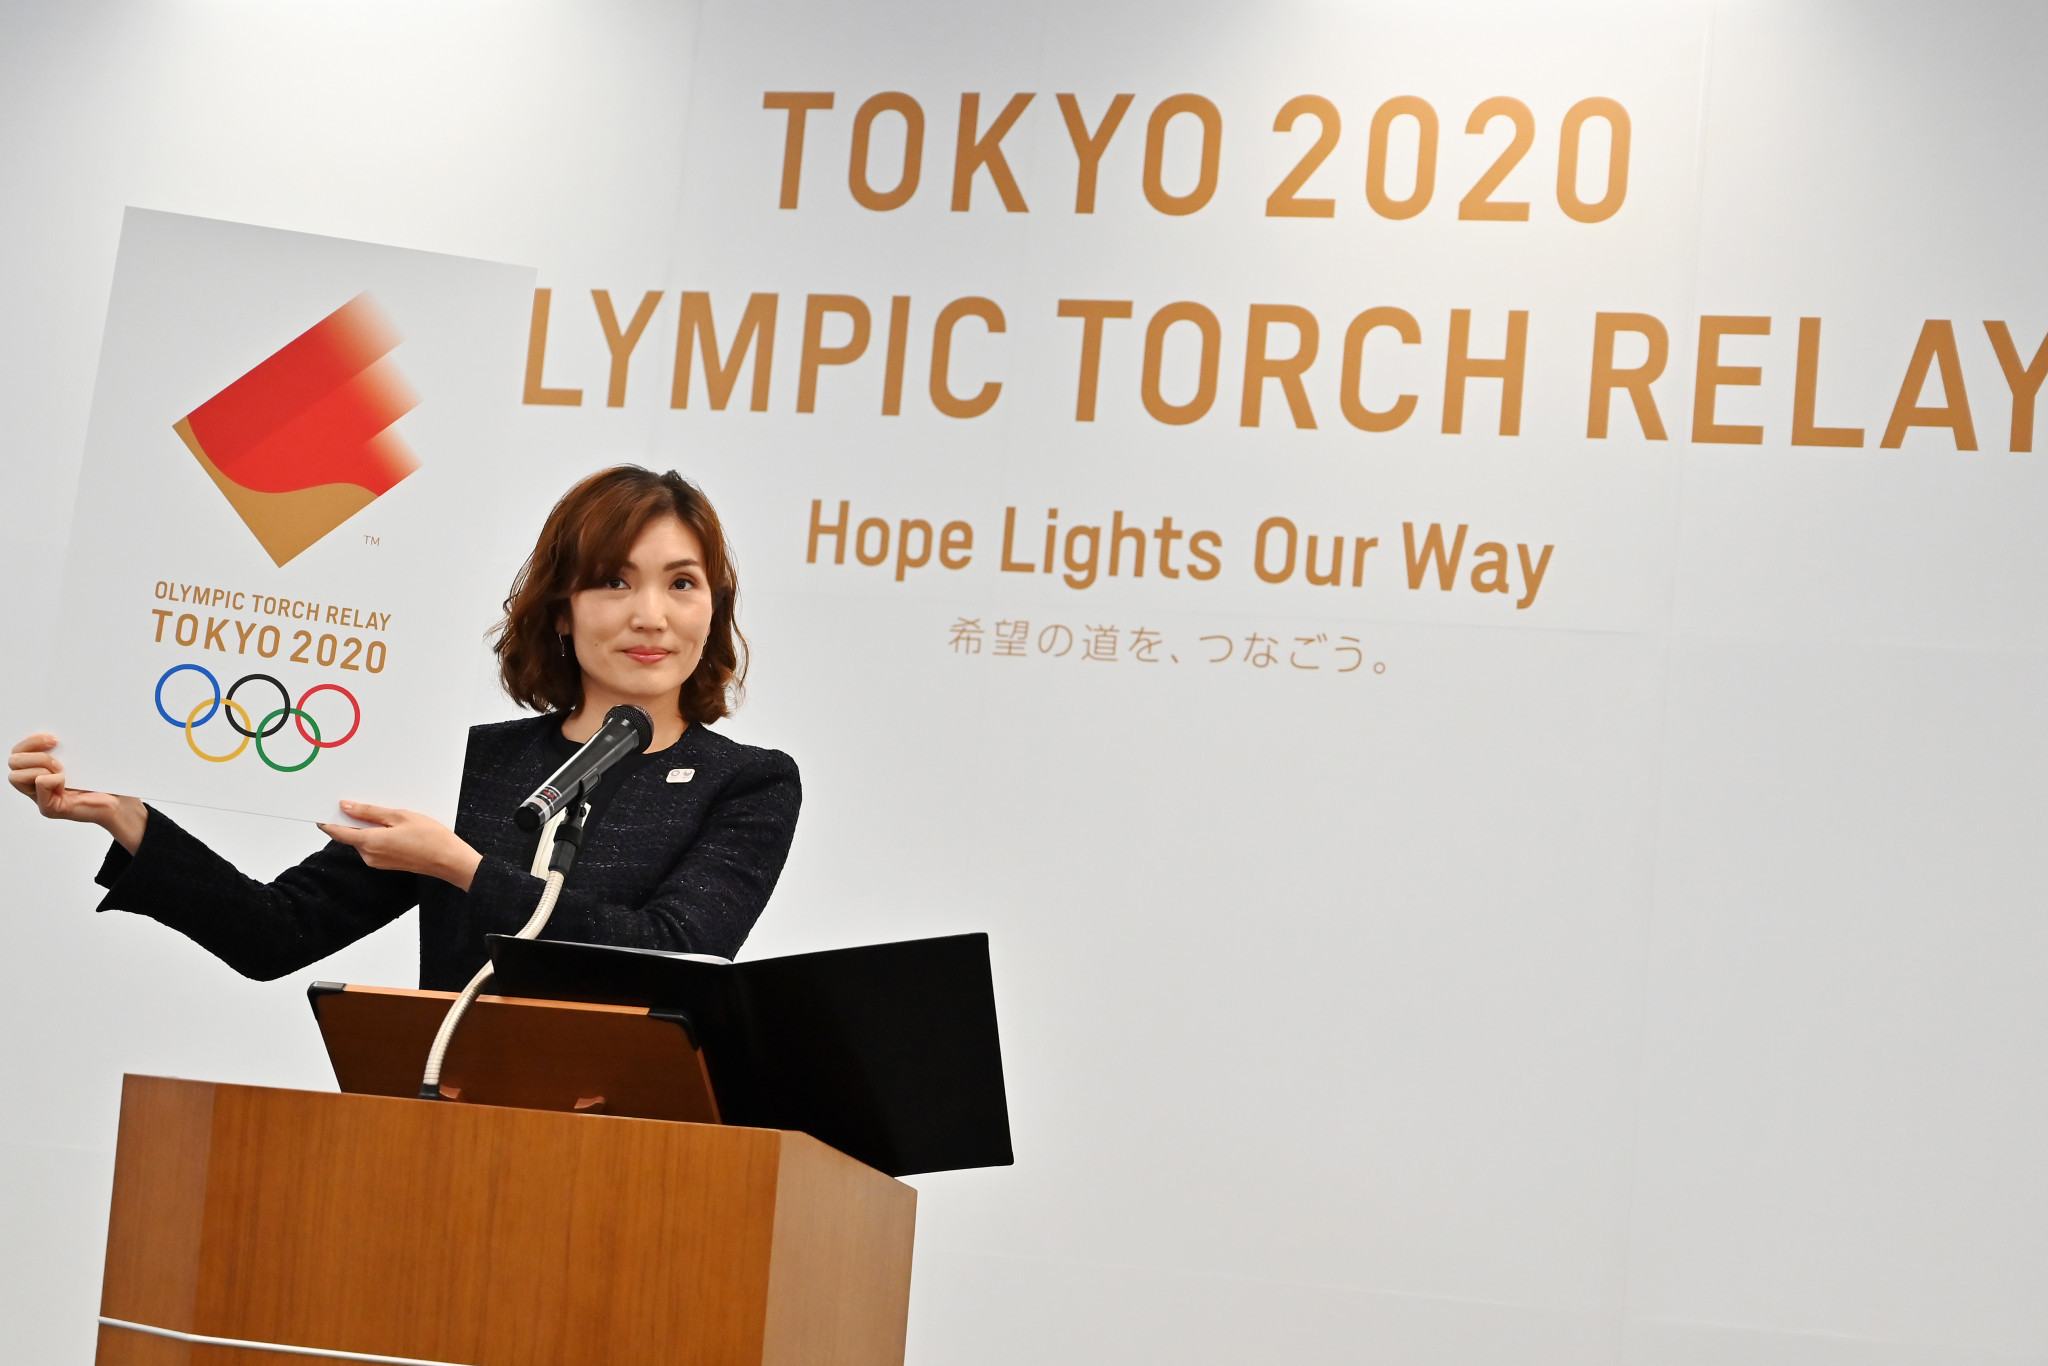 The Tokyo 2020 Olympic Torch Relay emblem was also unveiled today ©Getty Images